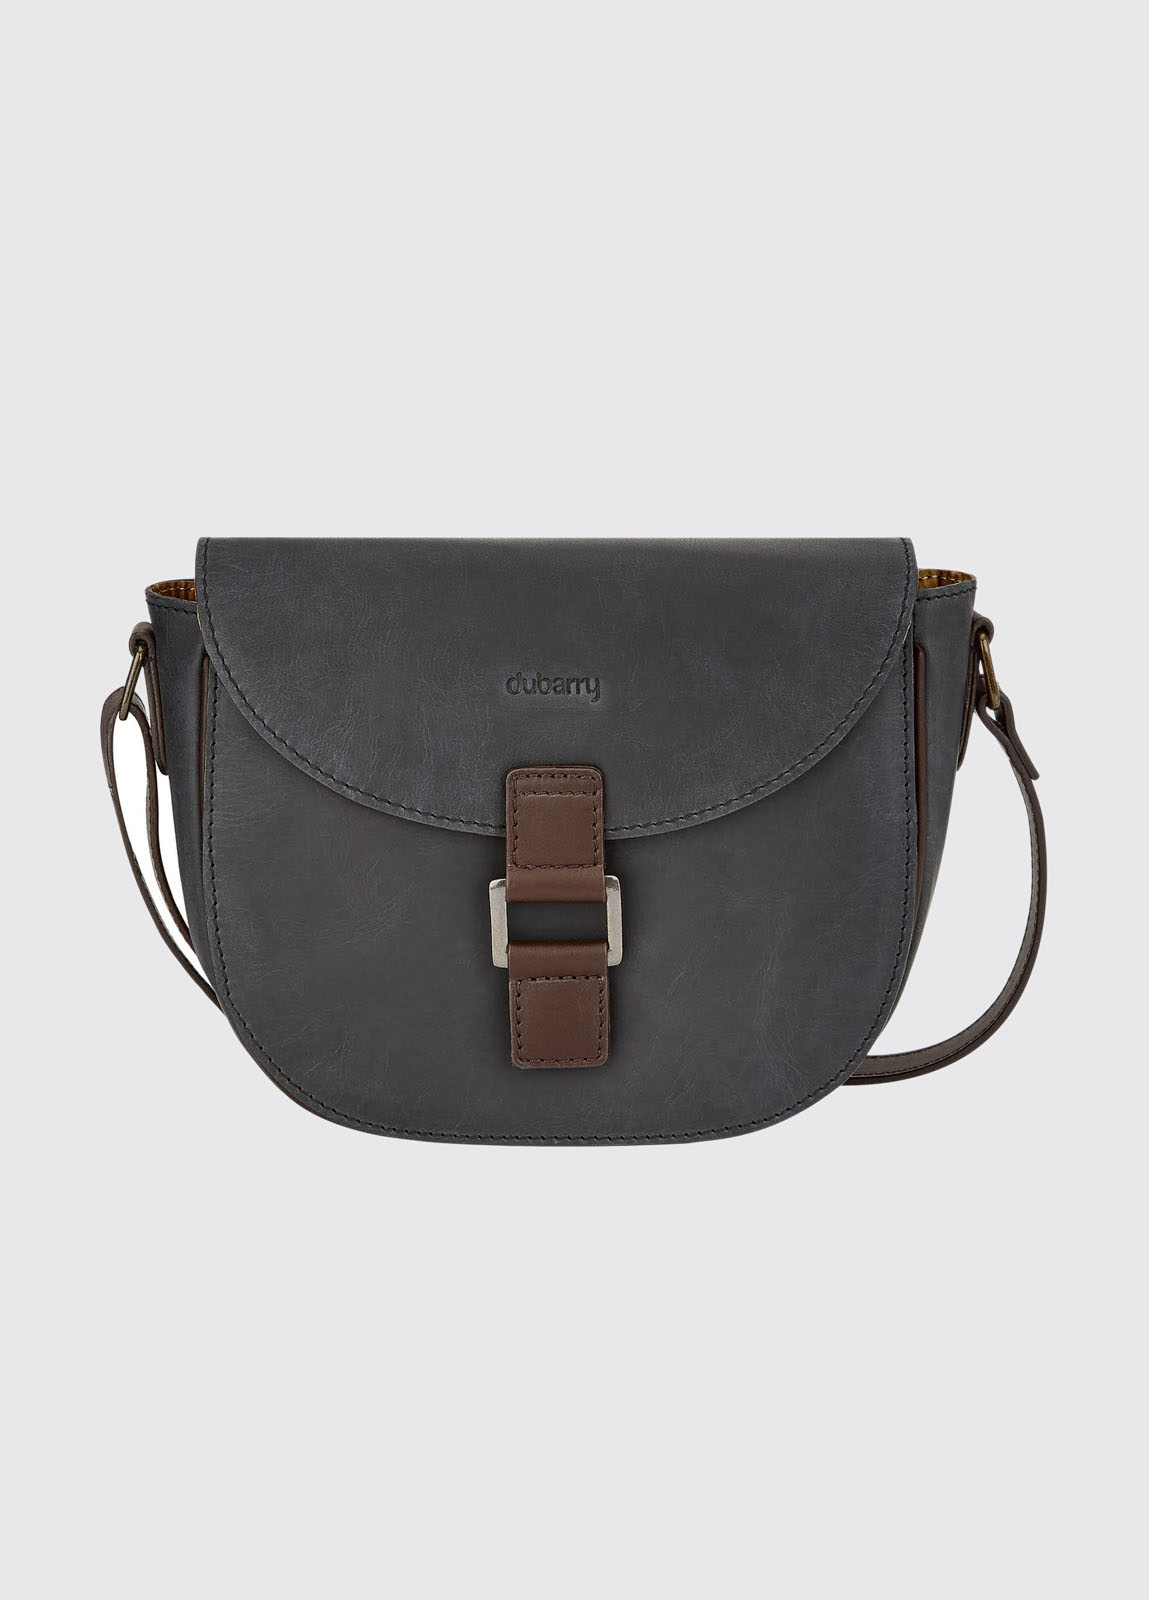 Ballybay Cross Body Bag - Black/Brown